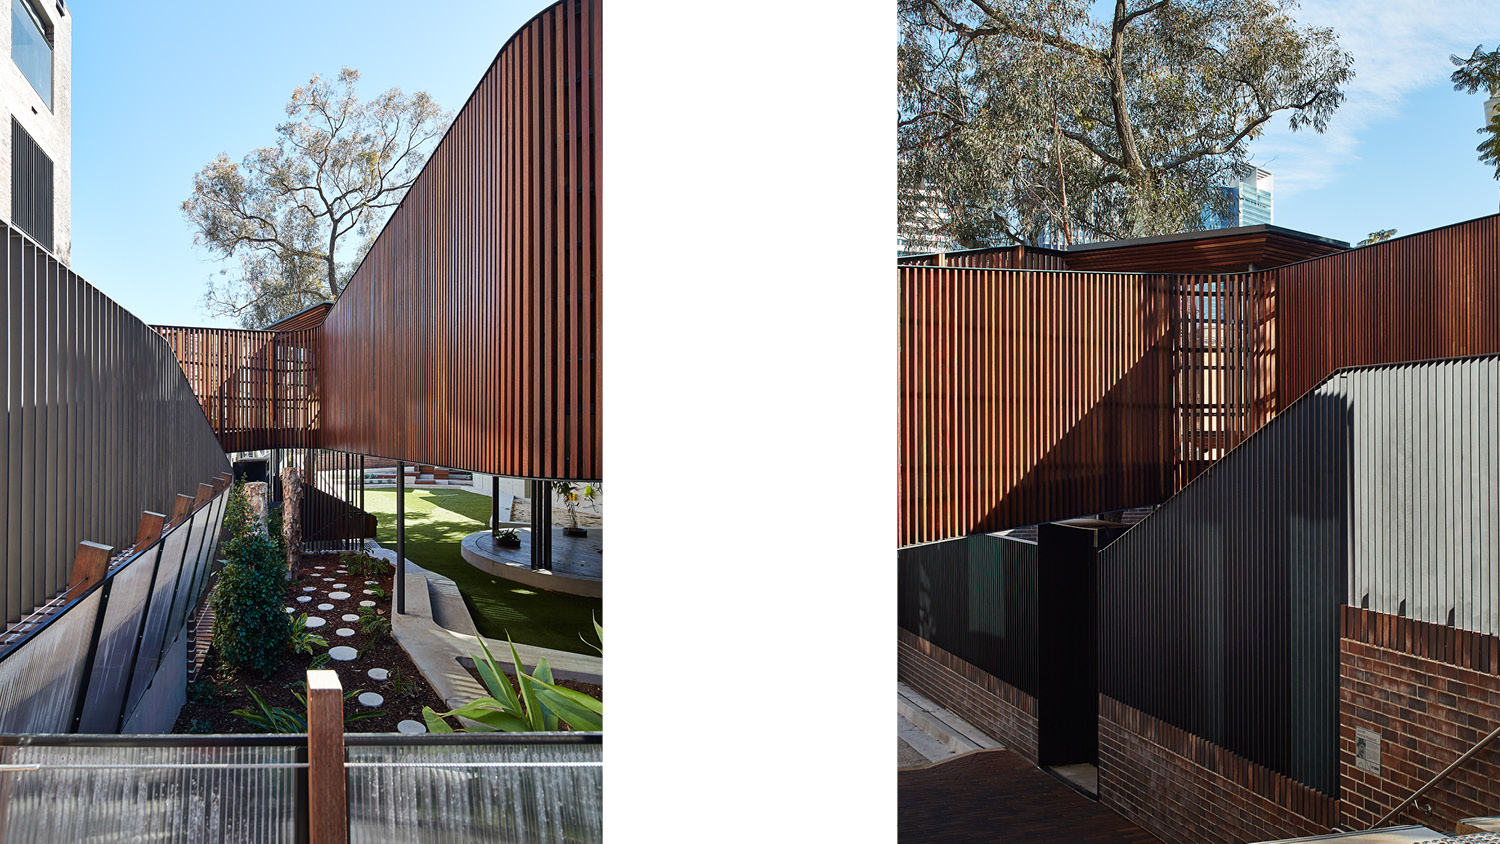 EAST SYDNEY EARLY LEARNING CENTRE — Andrew Burges Architects